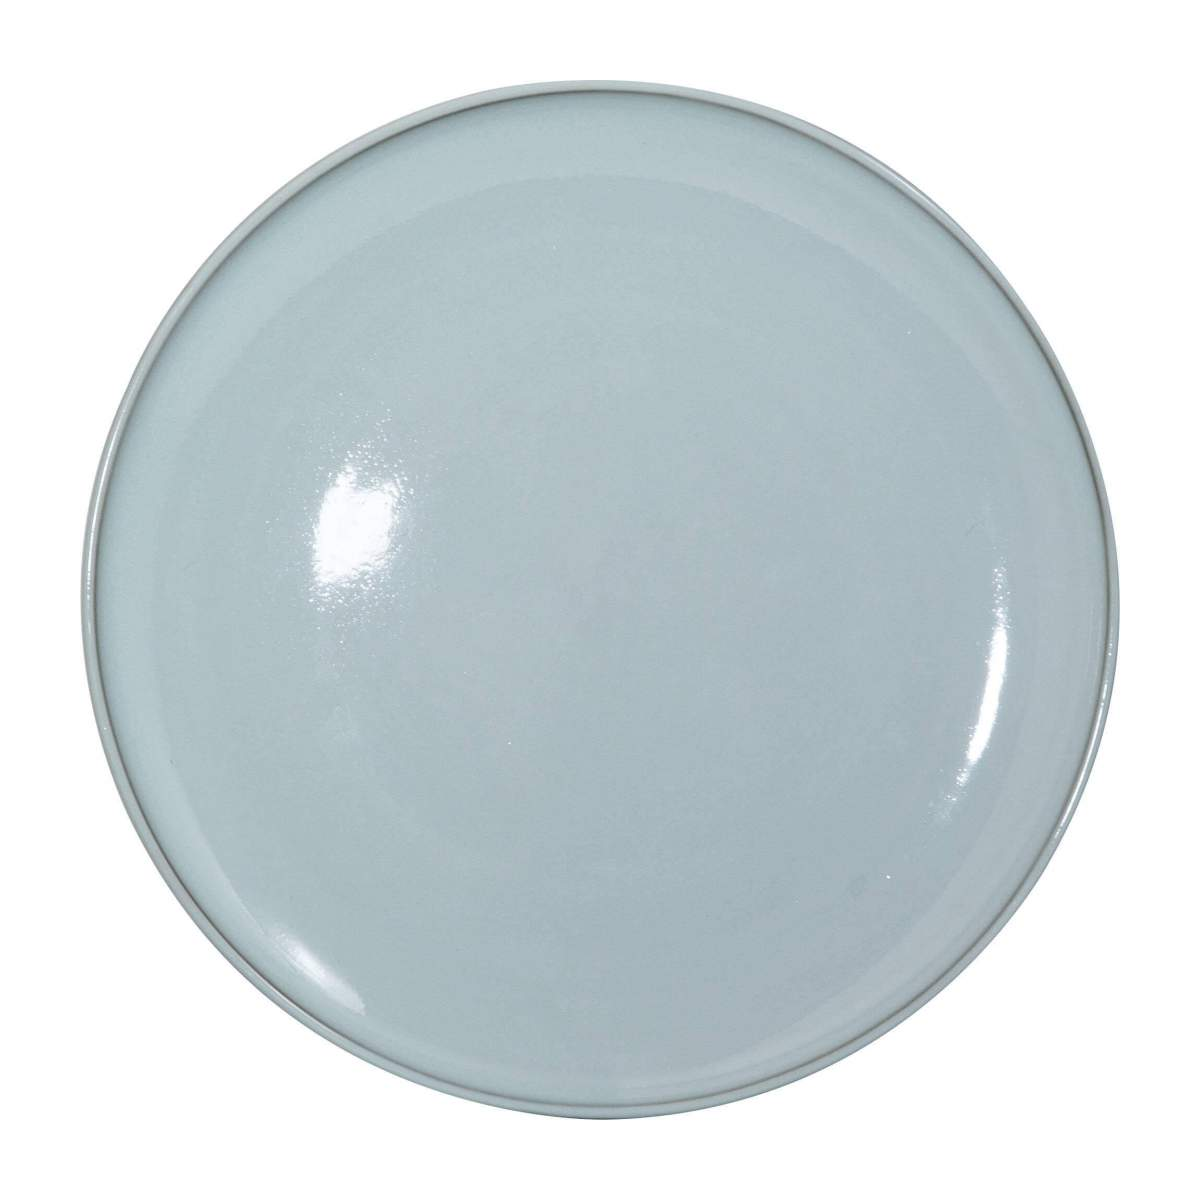 Service porcelain plate 33cm, brown and green - Design by Perla Valtierra n°1